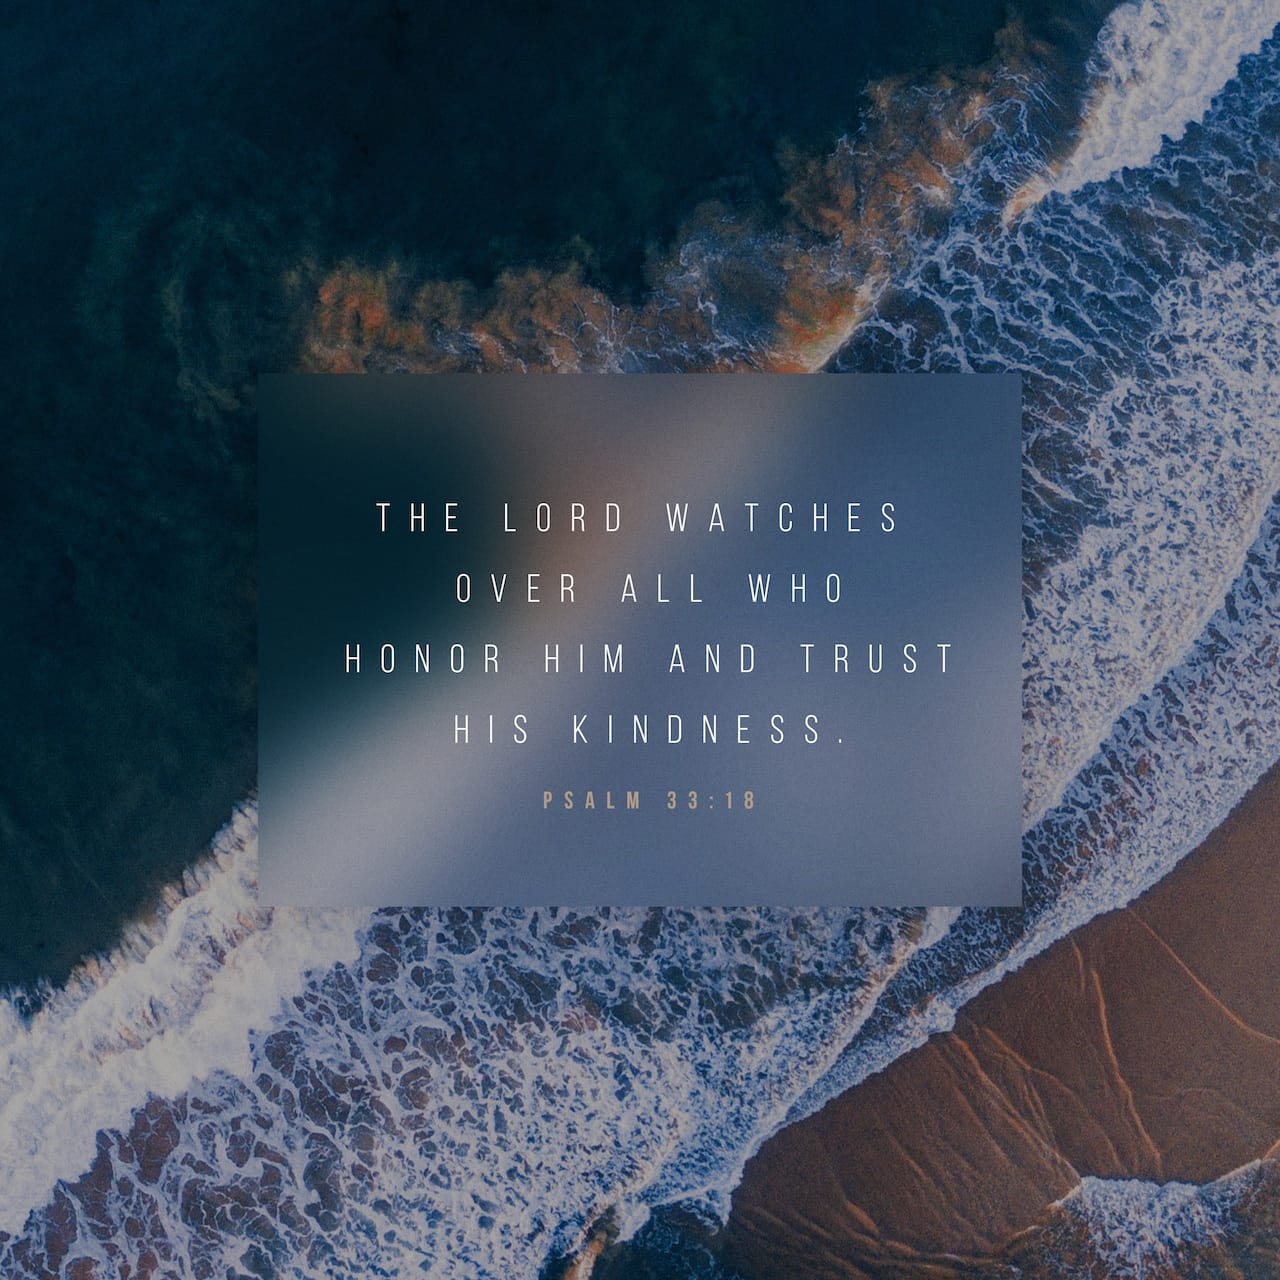 Psalms 33:18 But the LORD watches over those who fear him, those who rely on his unfailing love. | New Living Translation (NLT)